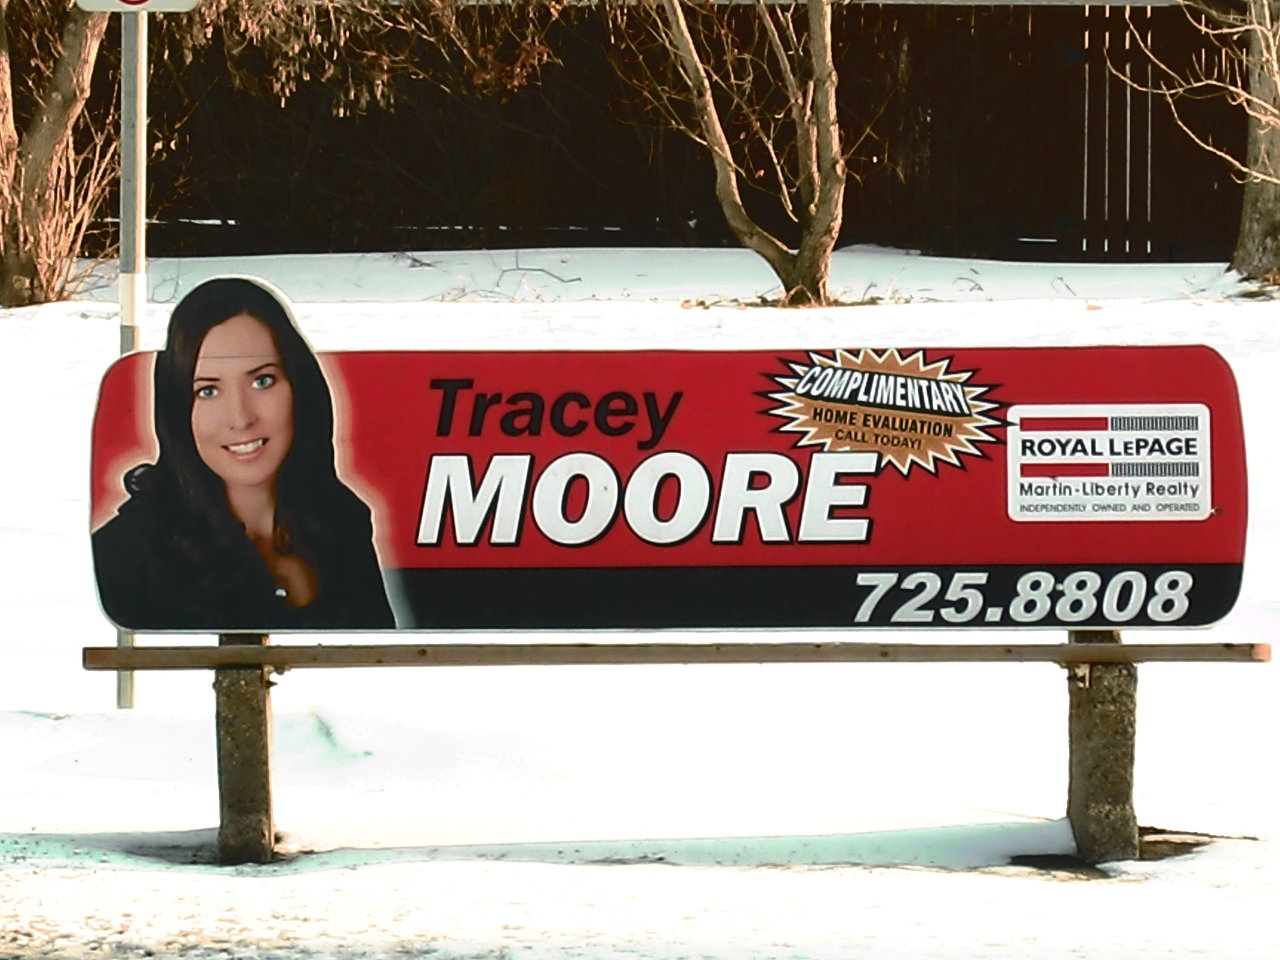 Tracey Moore